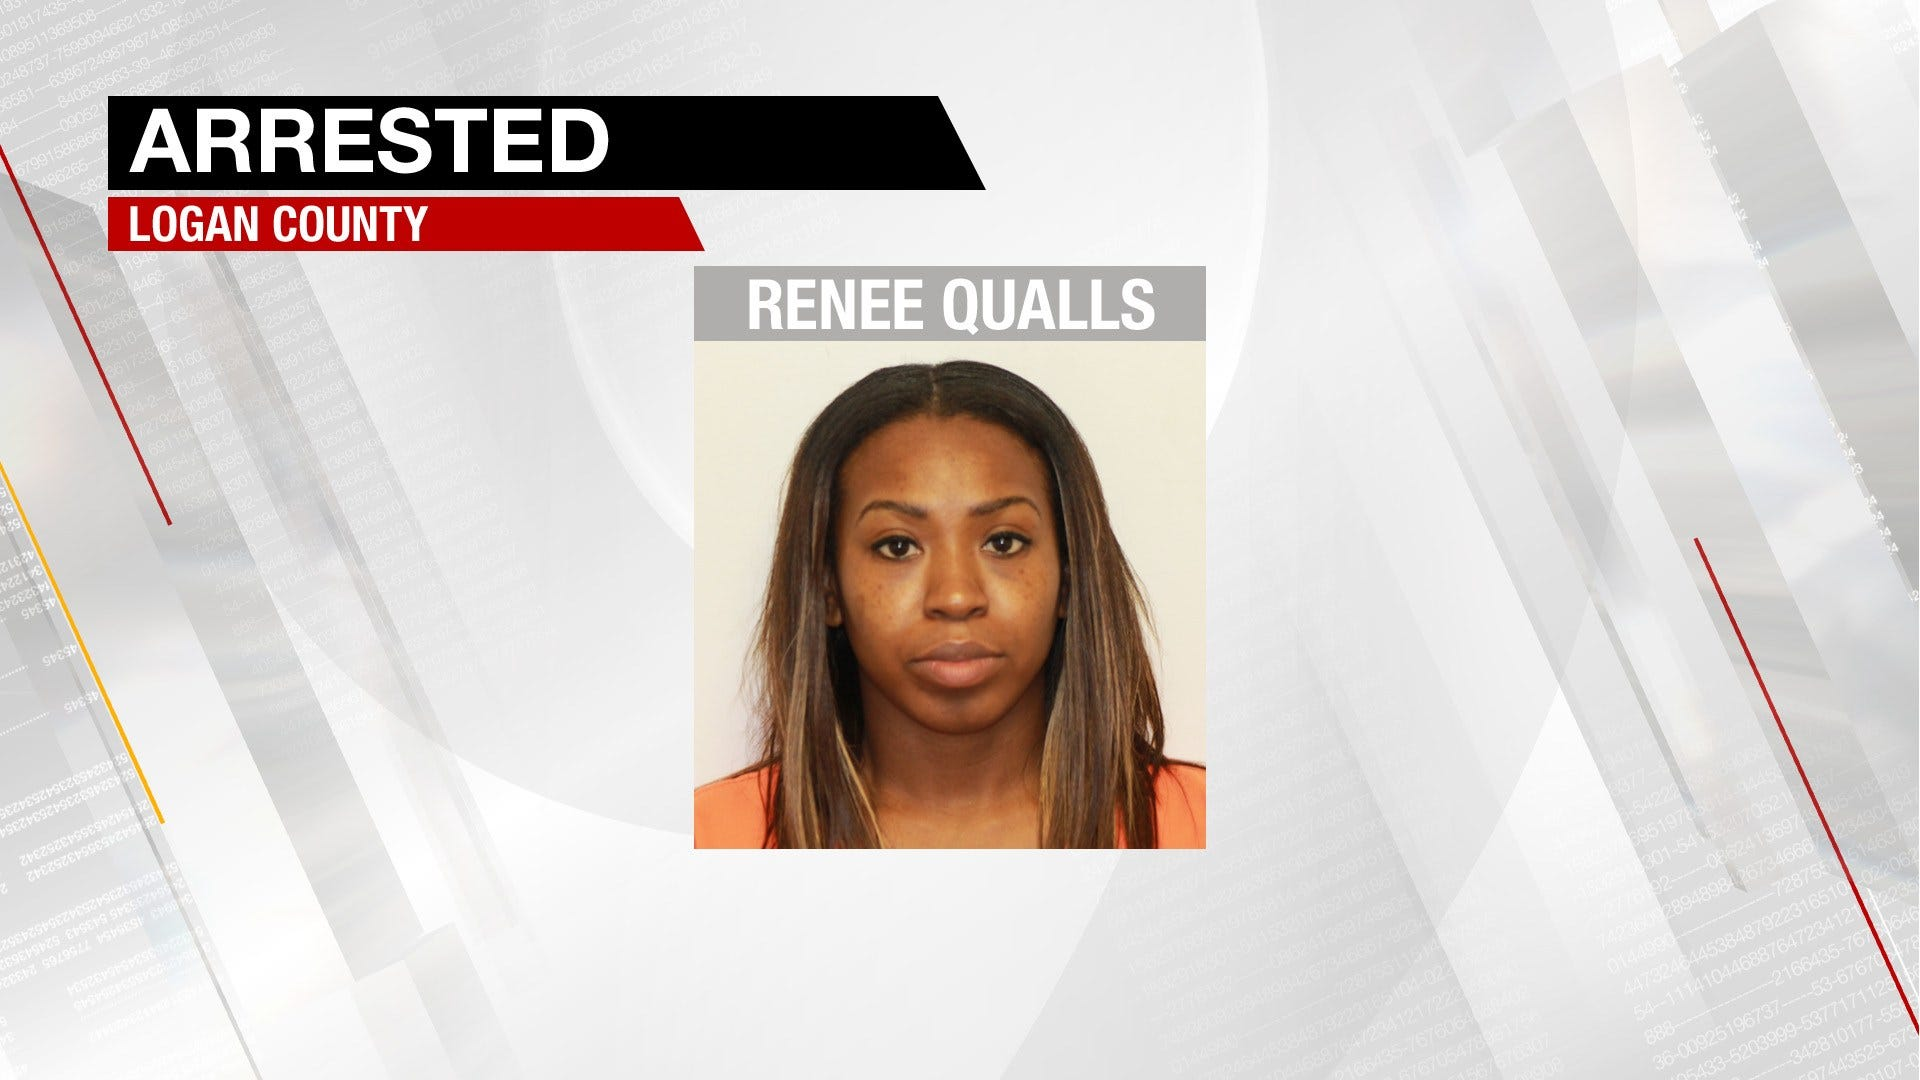 Woman Arrested In Logan County For Abandoning 15-Year-Old Daughter On Side Of I-35